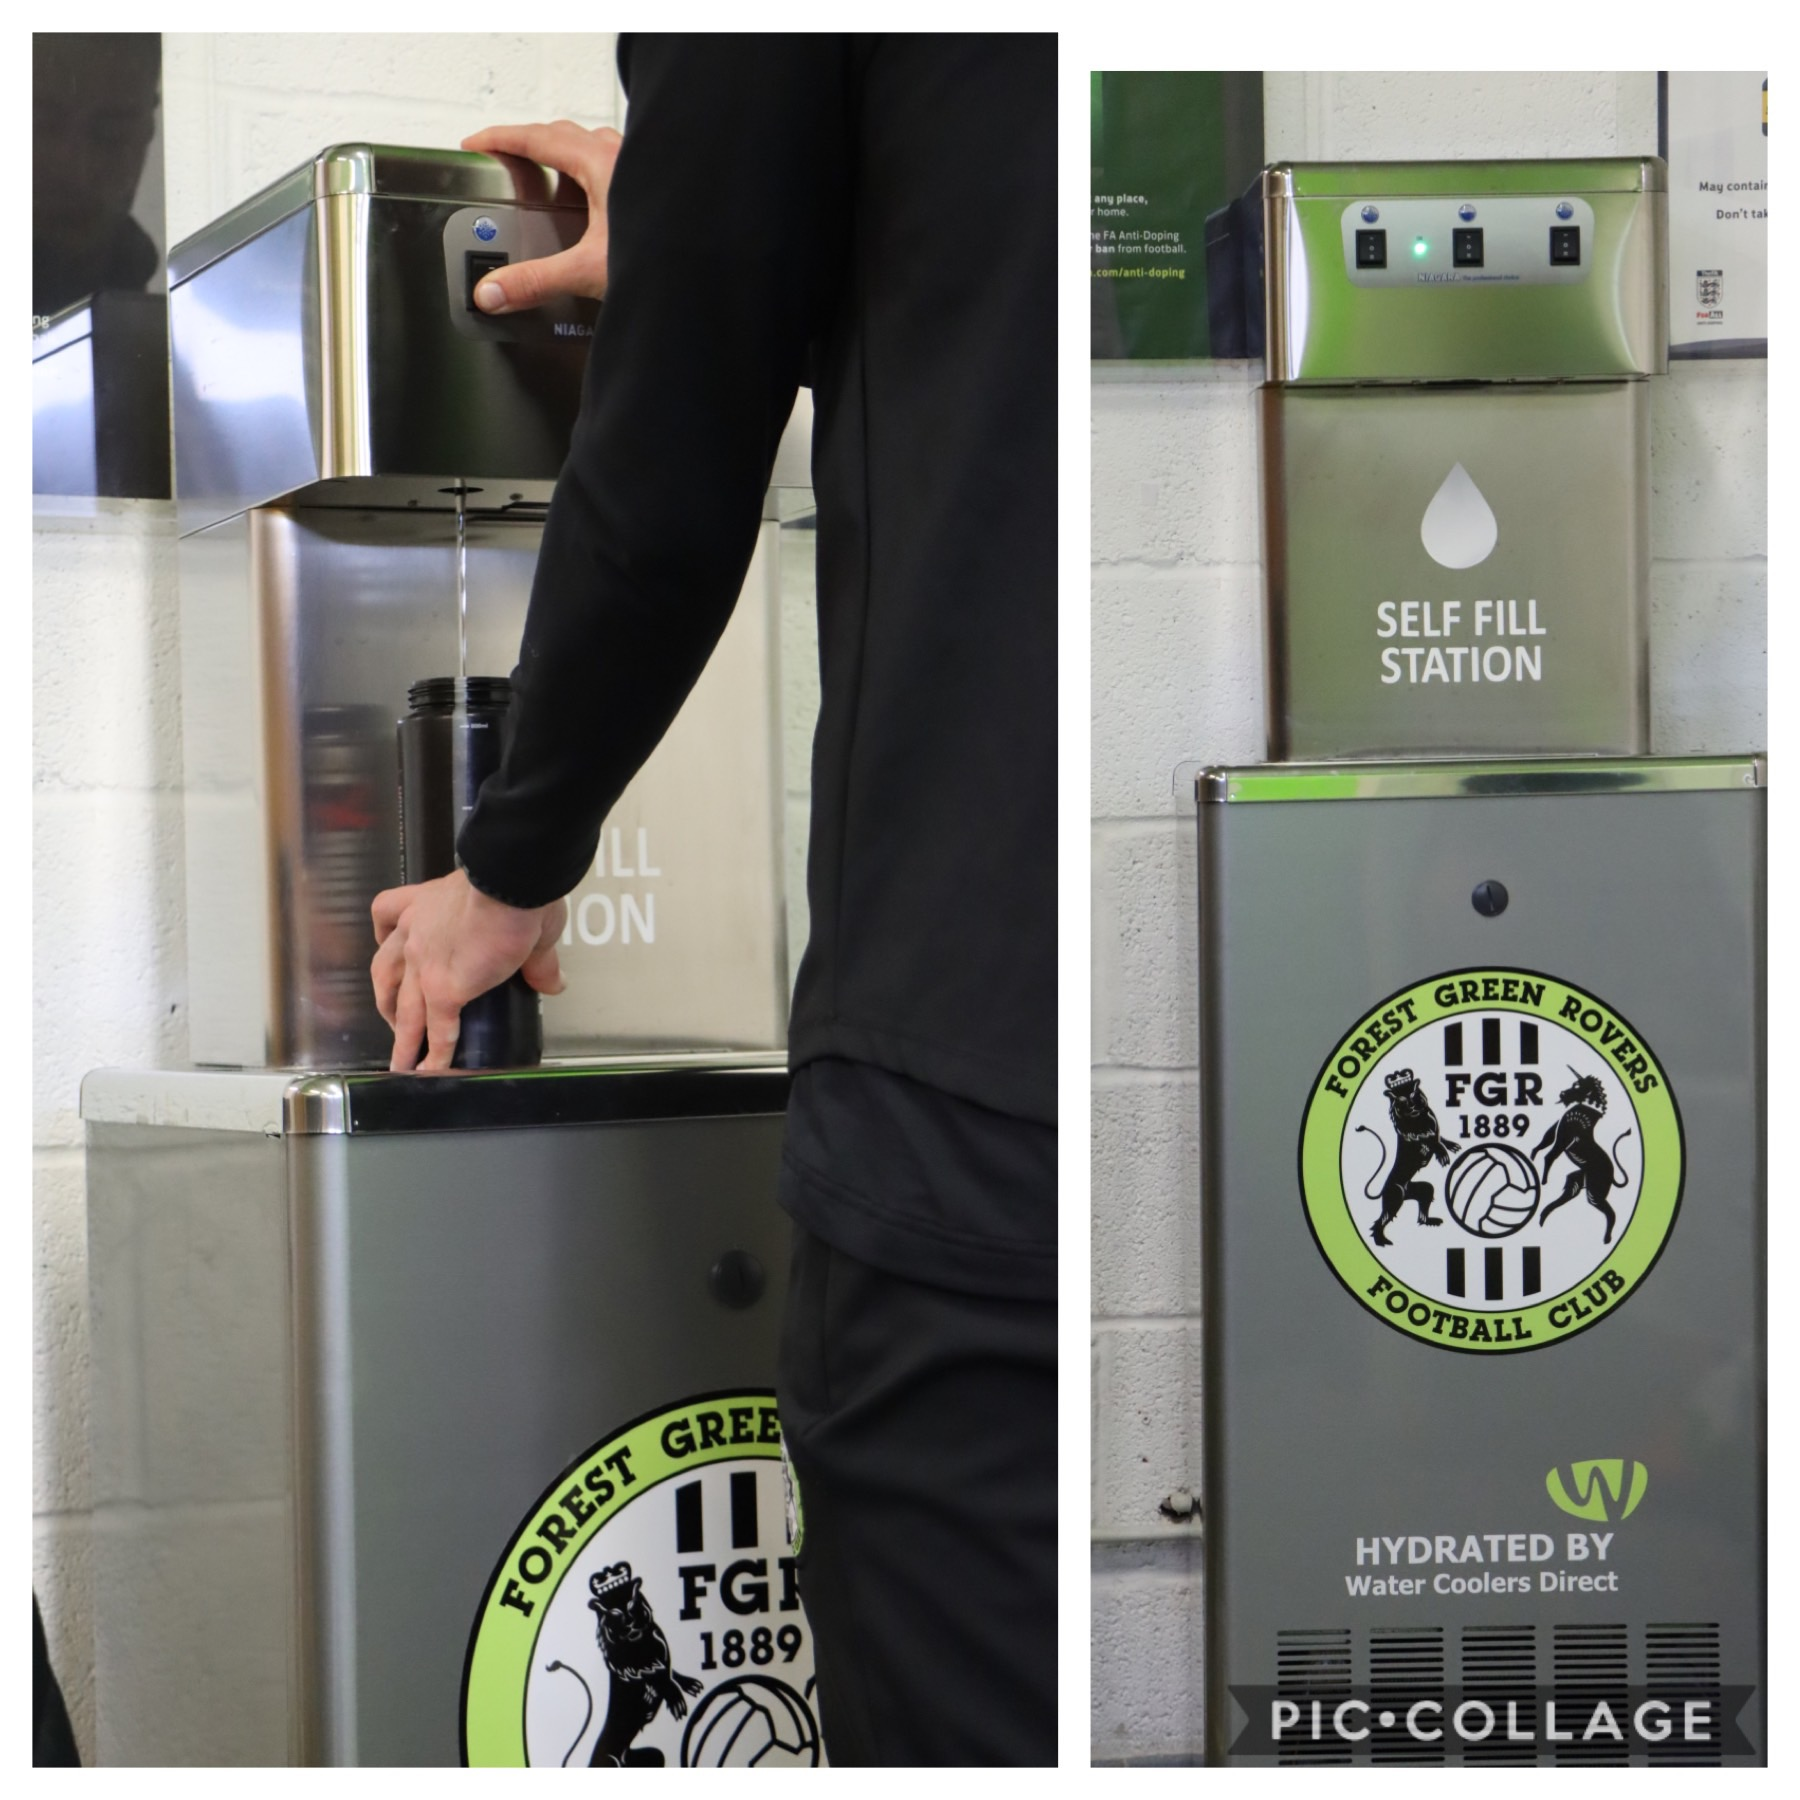 Forest Green Rovers chooses WCD Group for sustainable hydration